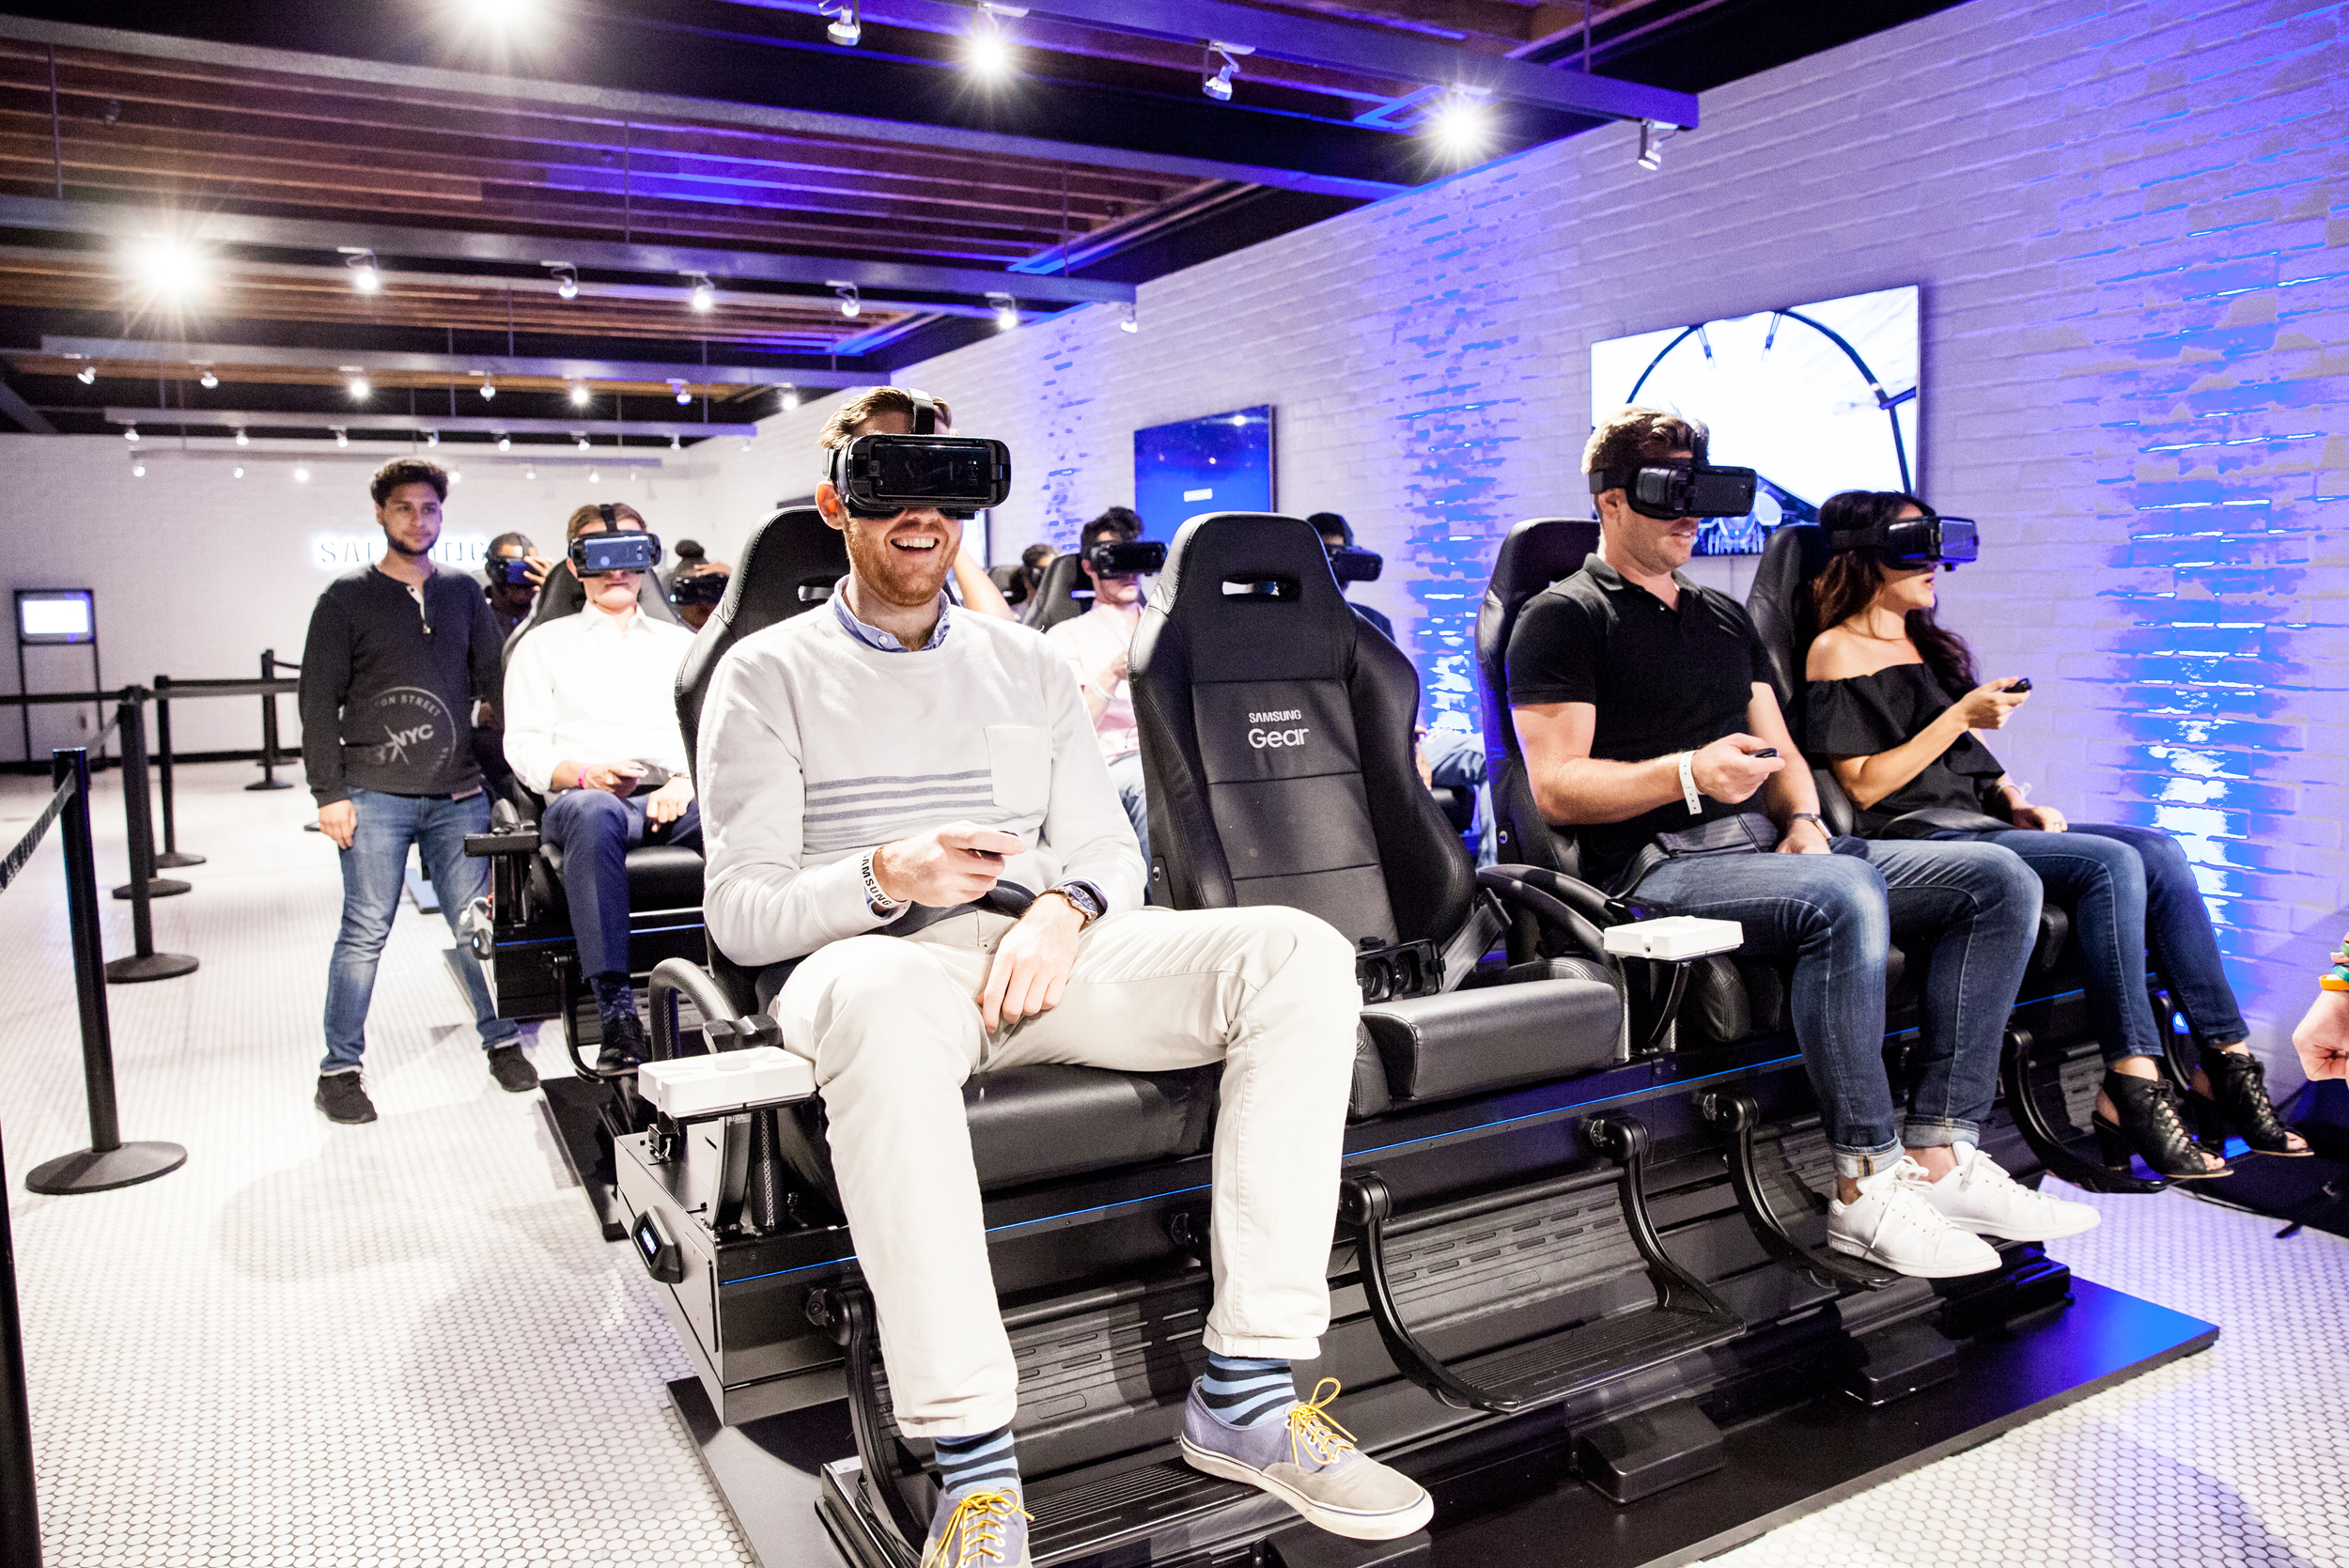 Virtual Reality Experiences at Samsung 837 in NYC